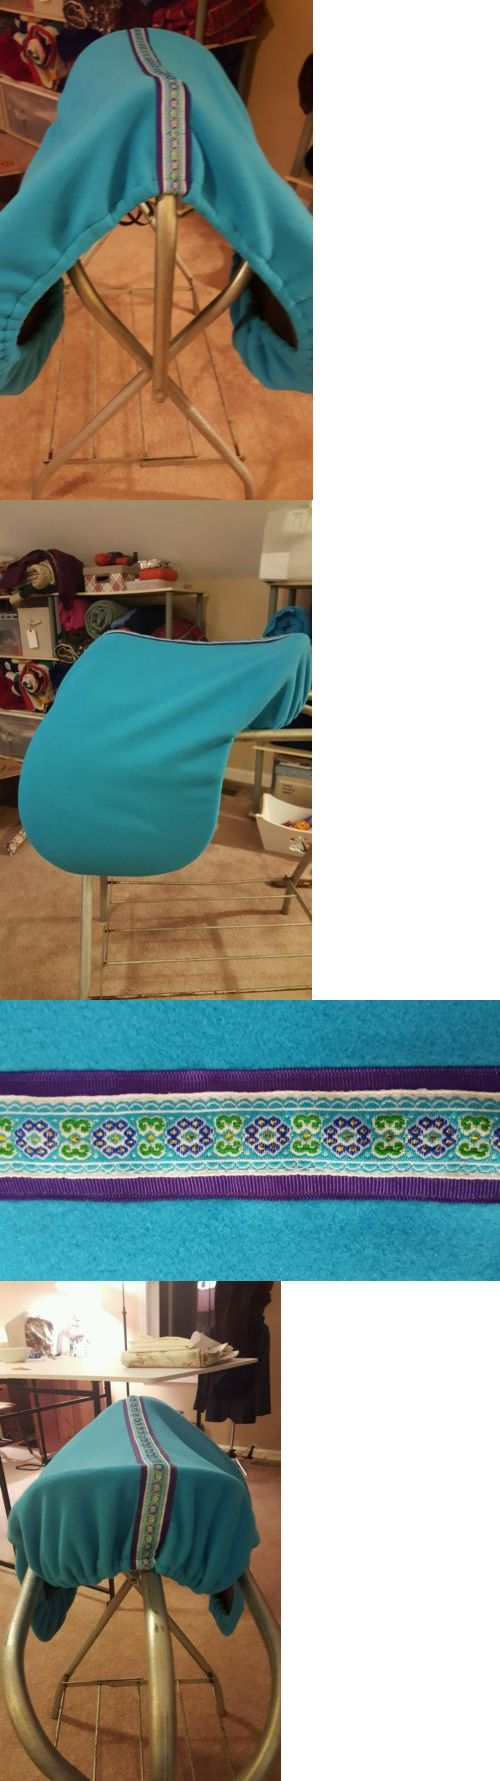 Saddle Covers 179000: English Saddle Cover- Turquoise With Pretty Ribbon Trim BUY IT NOW ONLY: $30.0